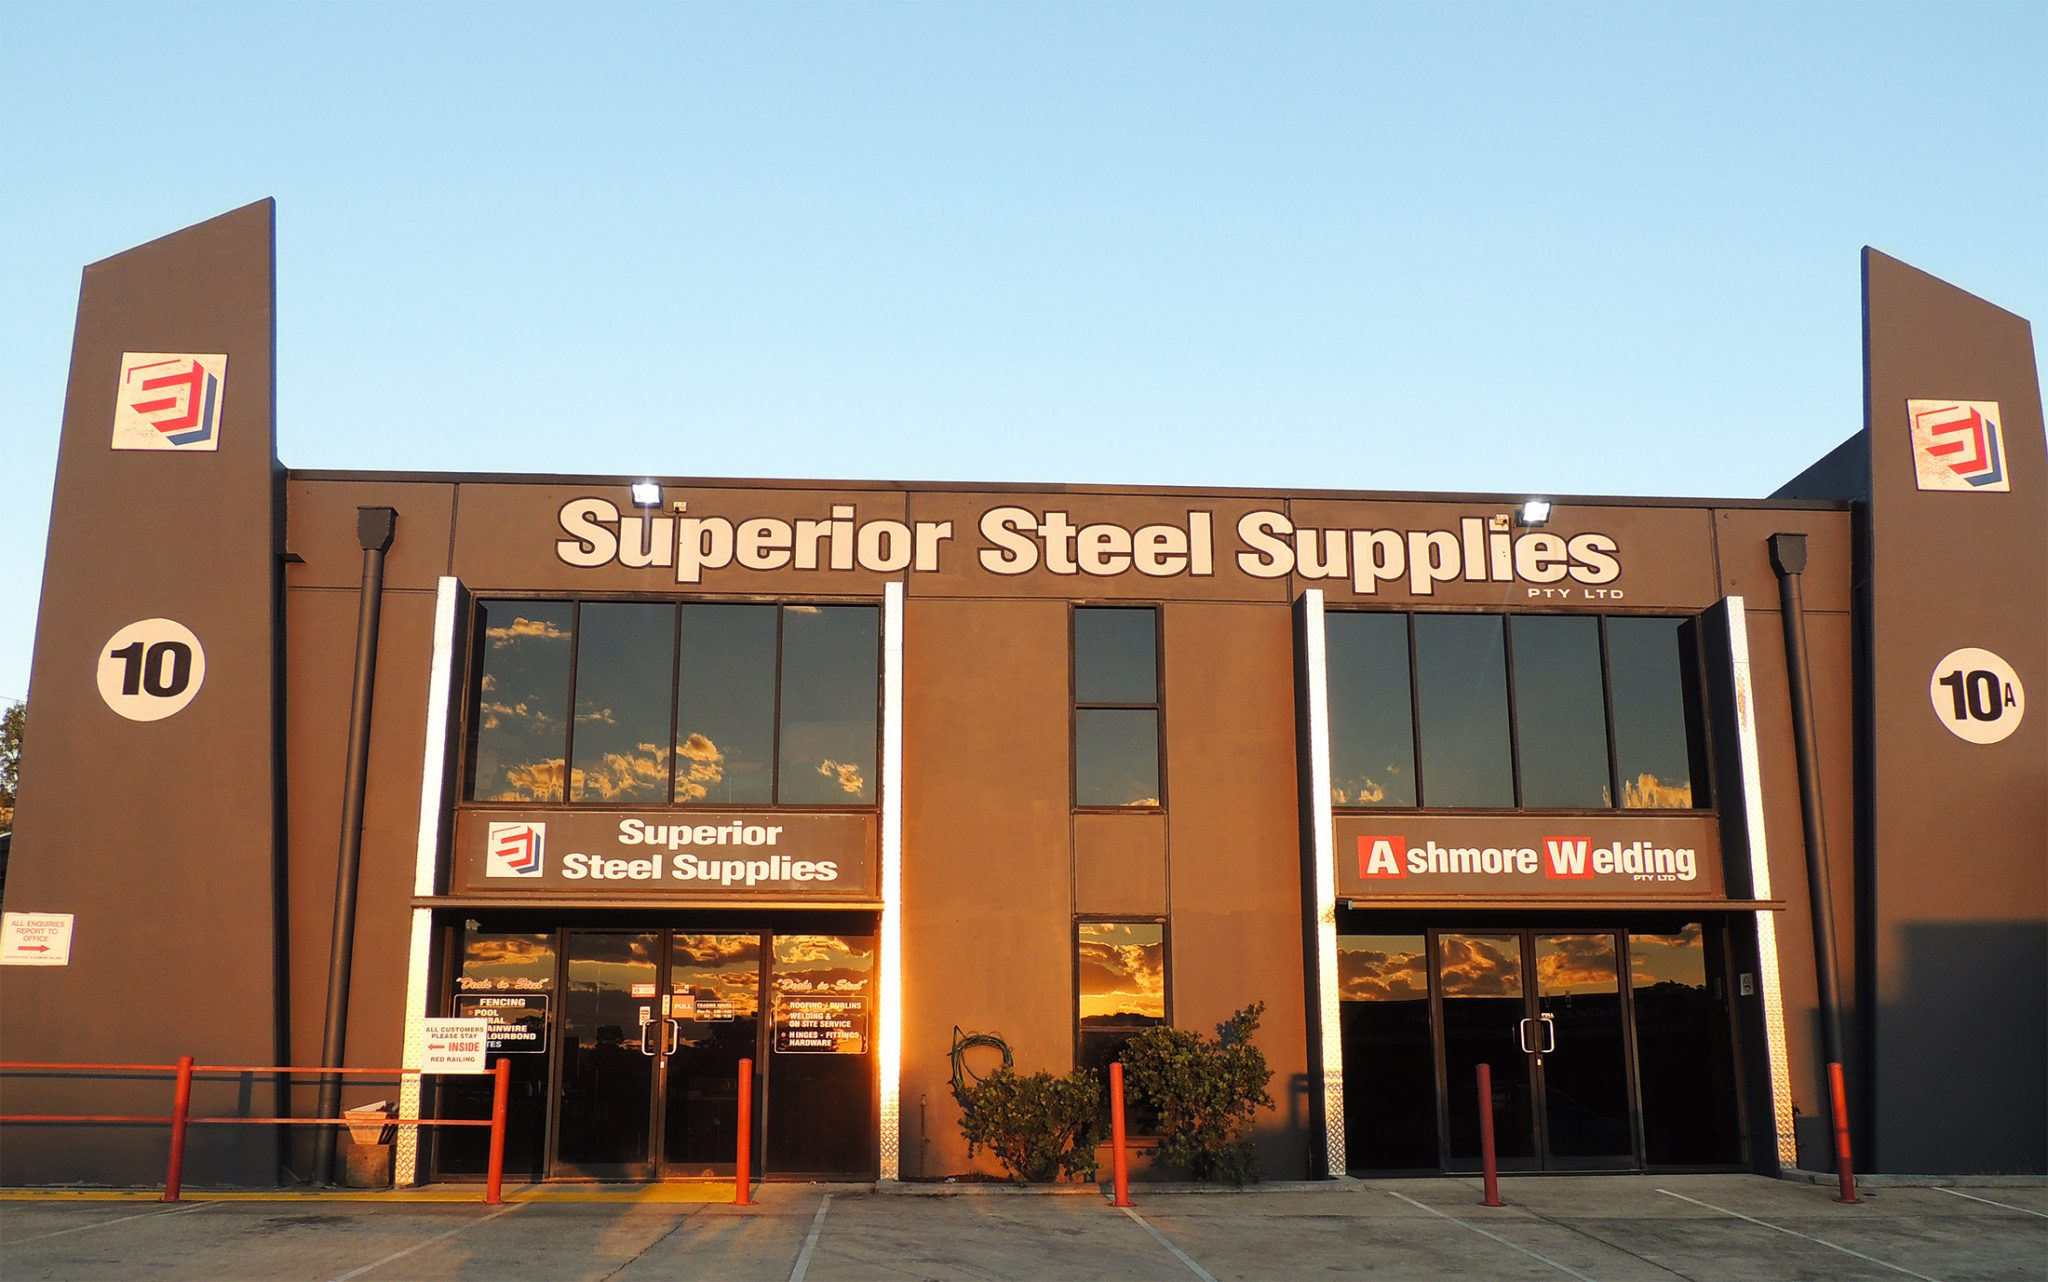 Superior Steel Supplies